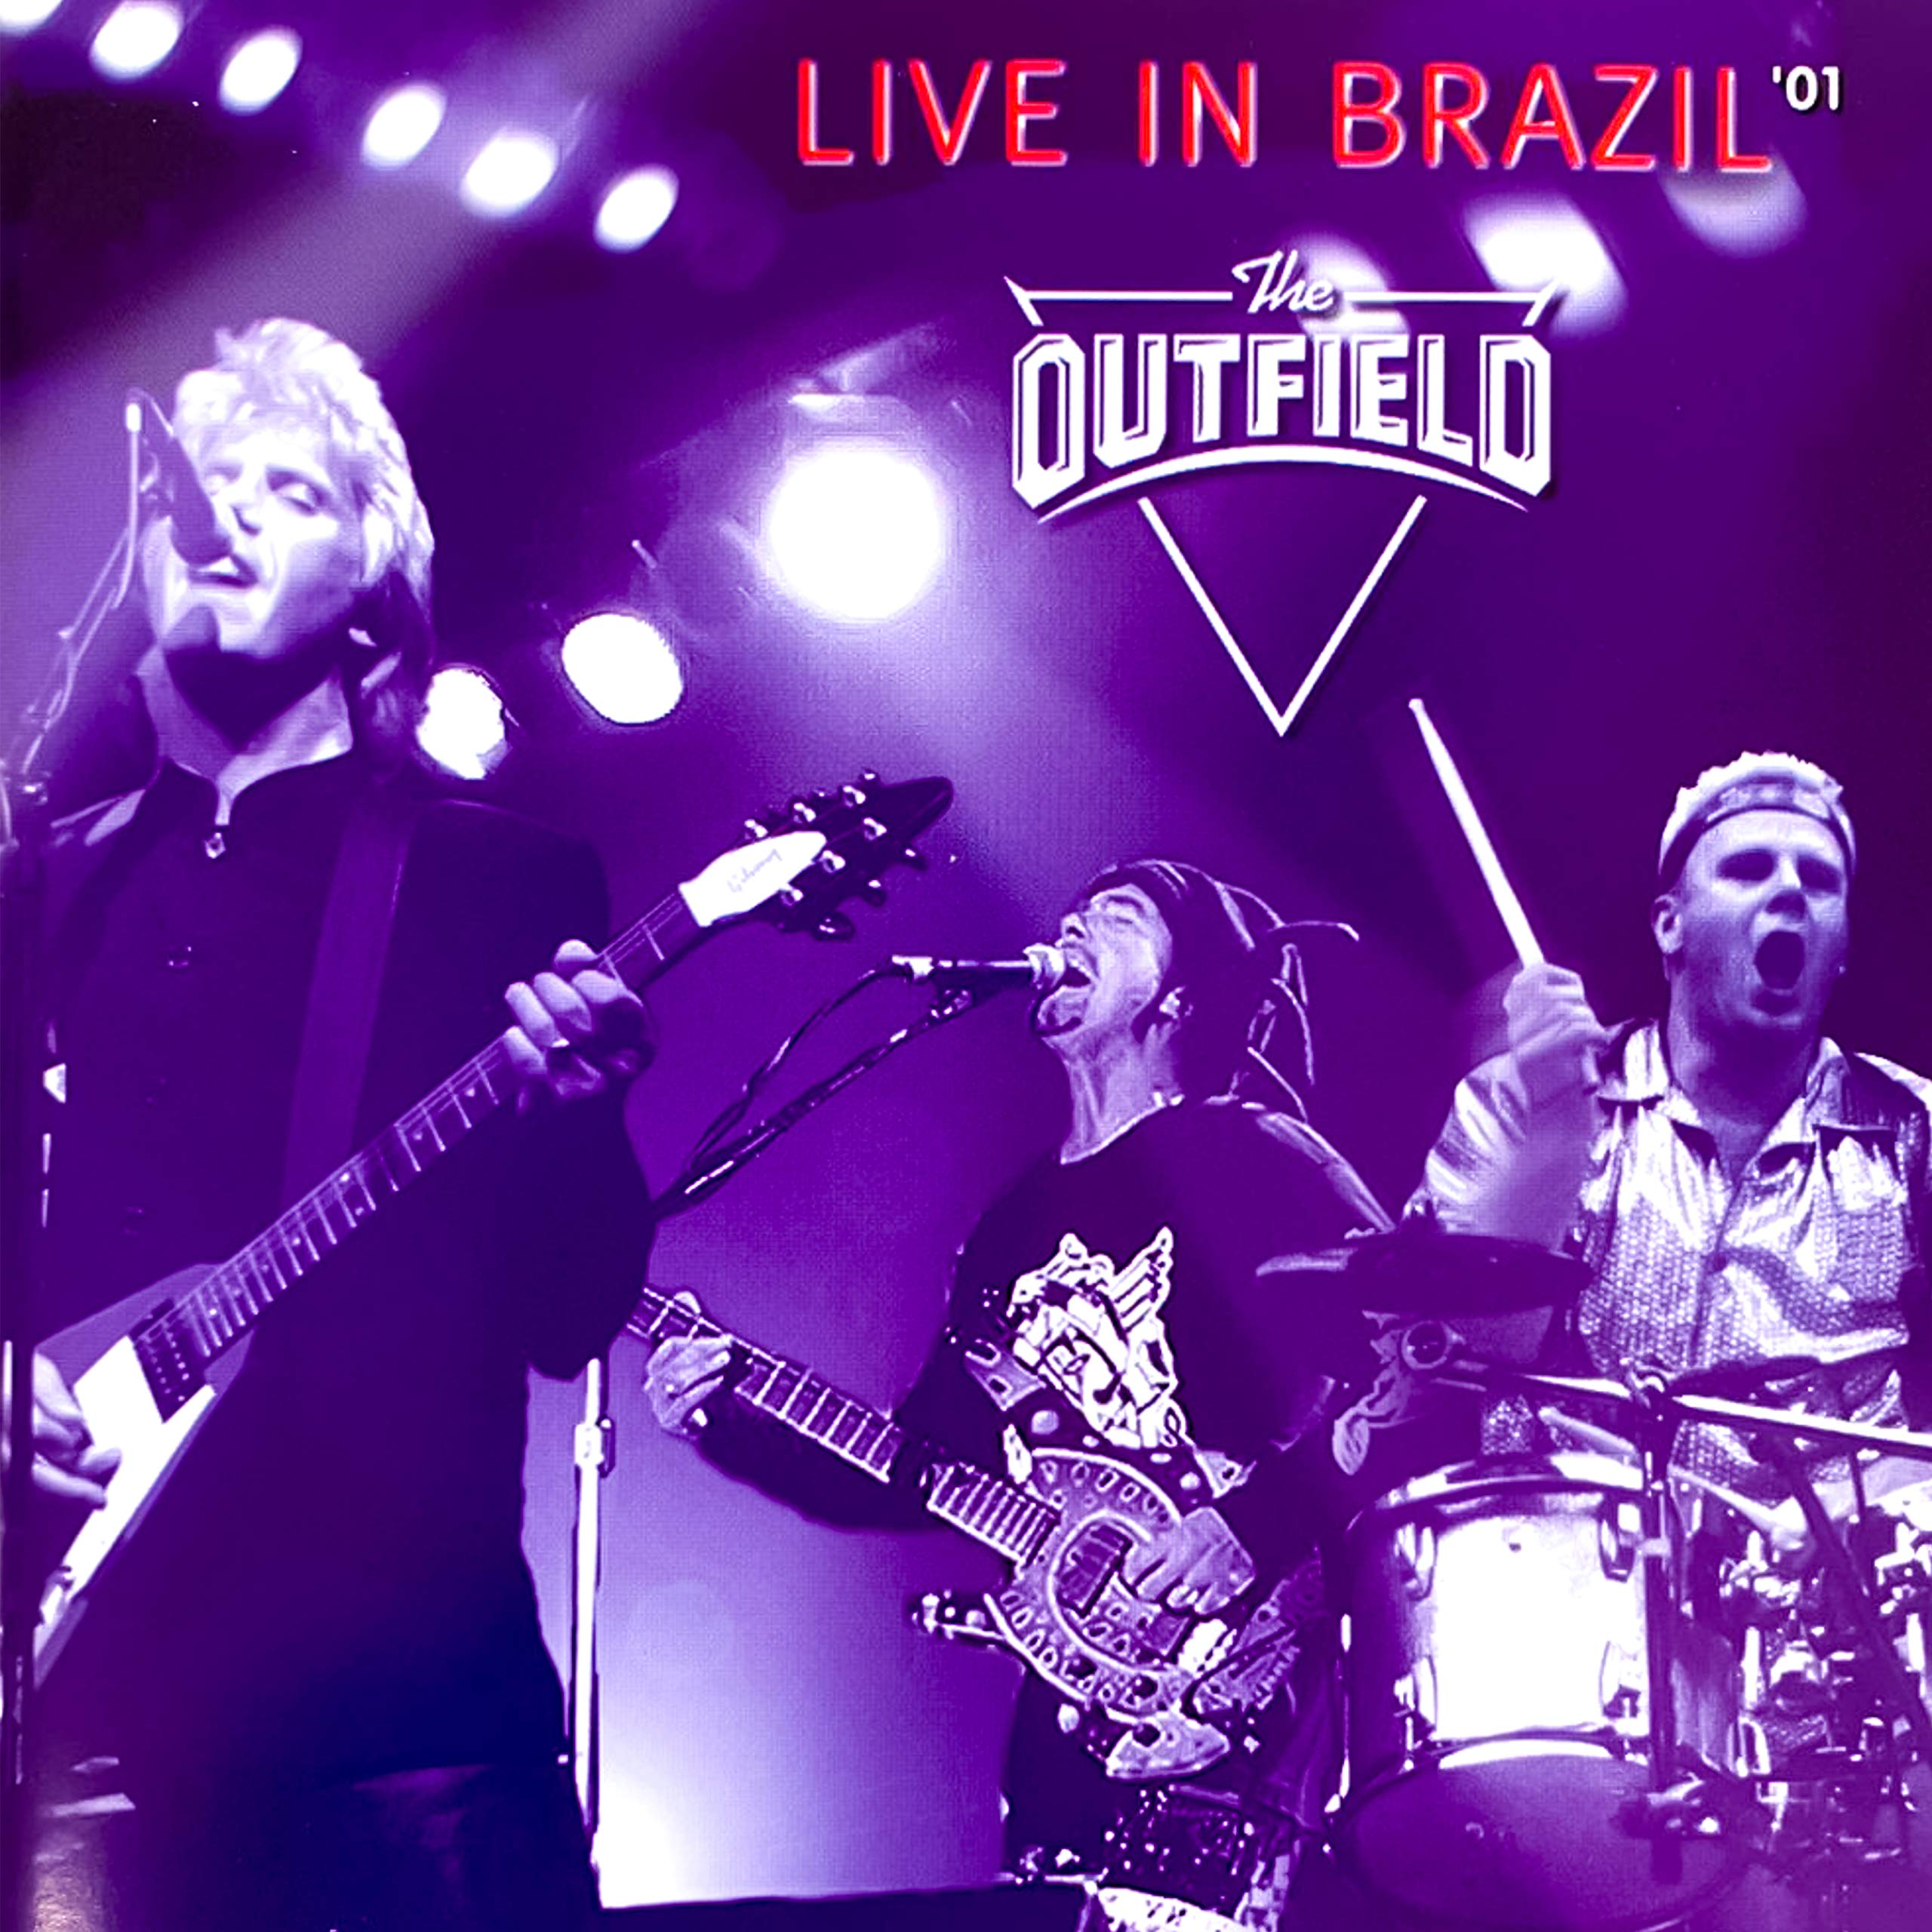 The Outfield – Live In Brazil '01 (2001) [FLAC]